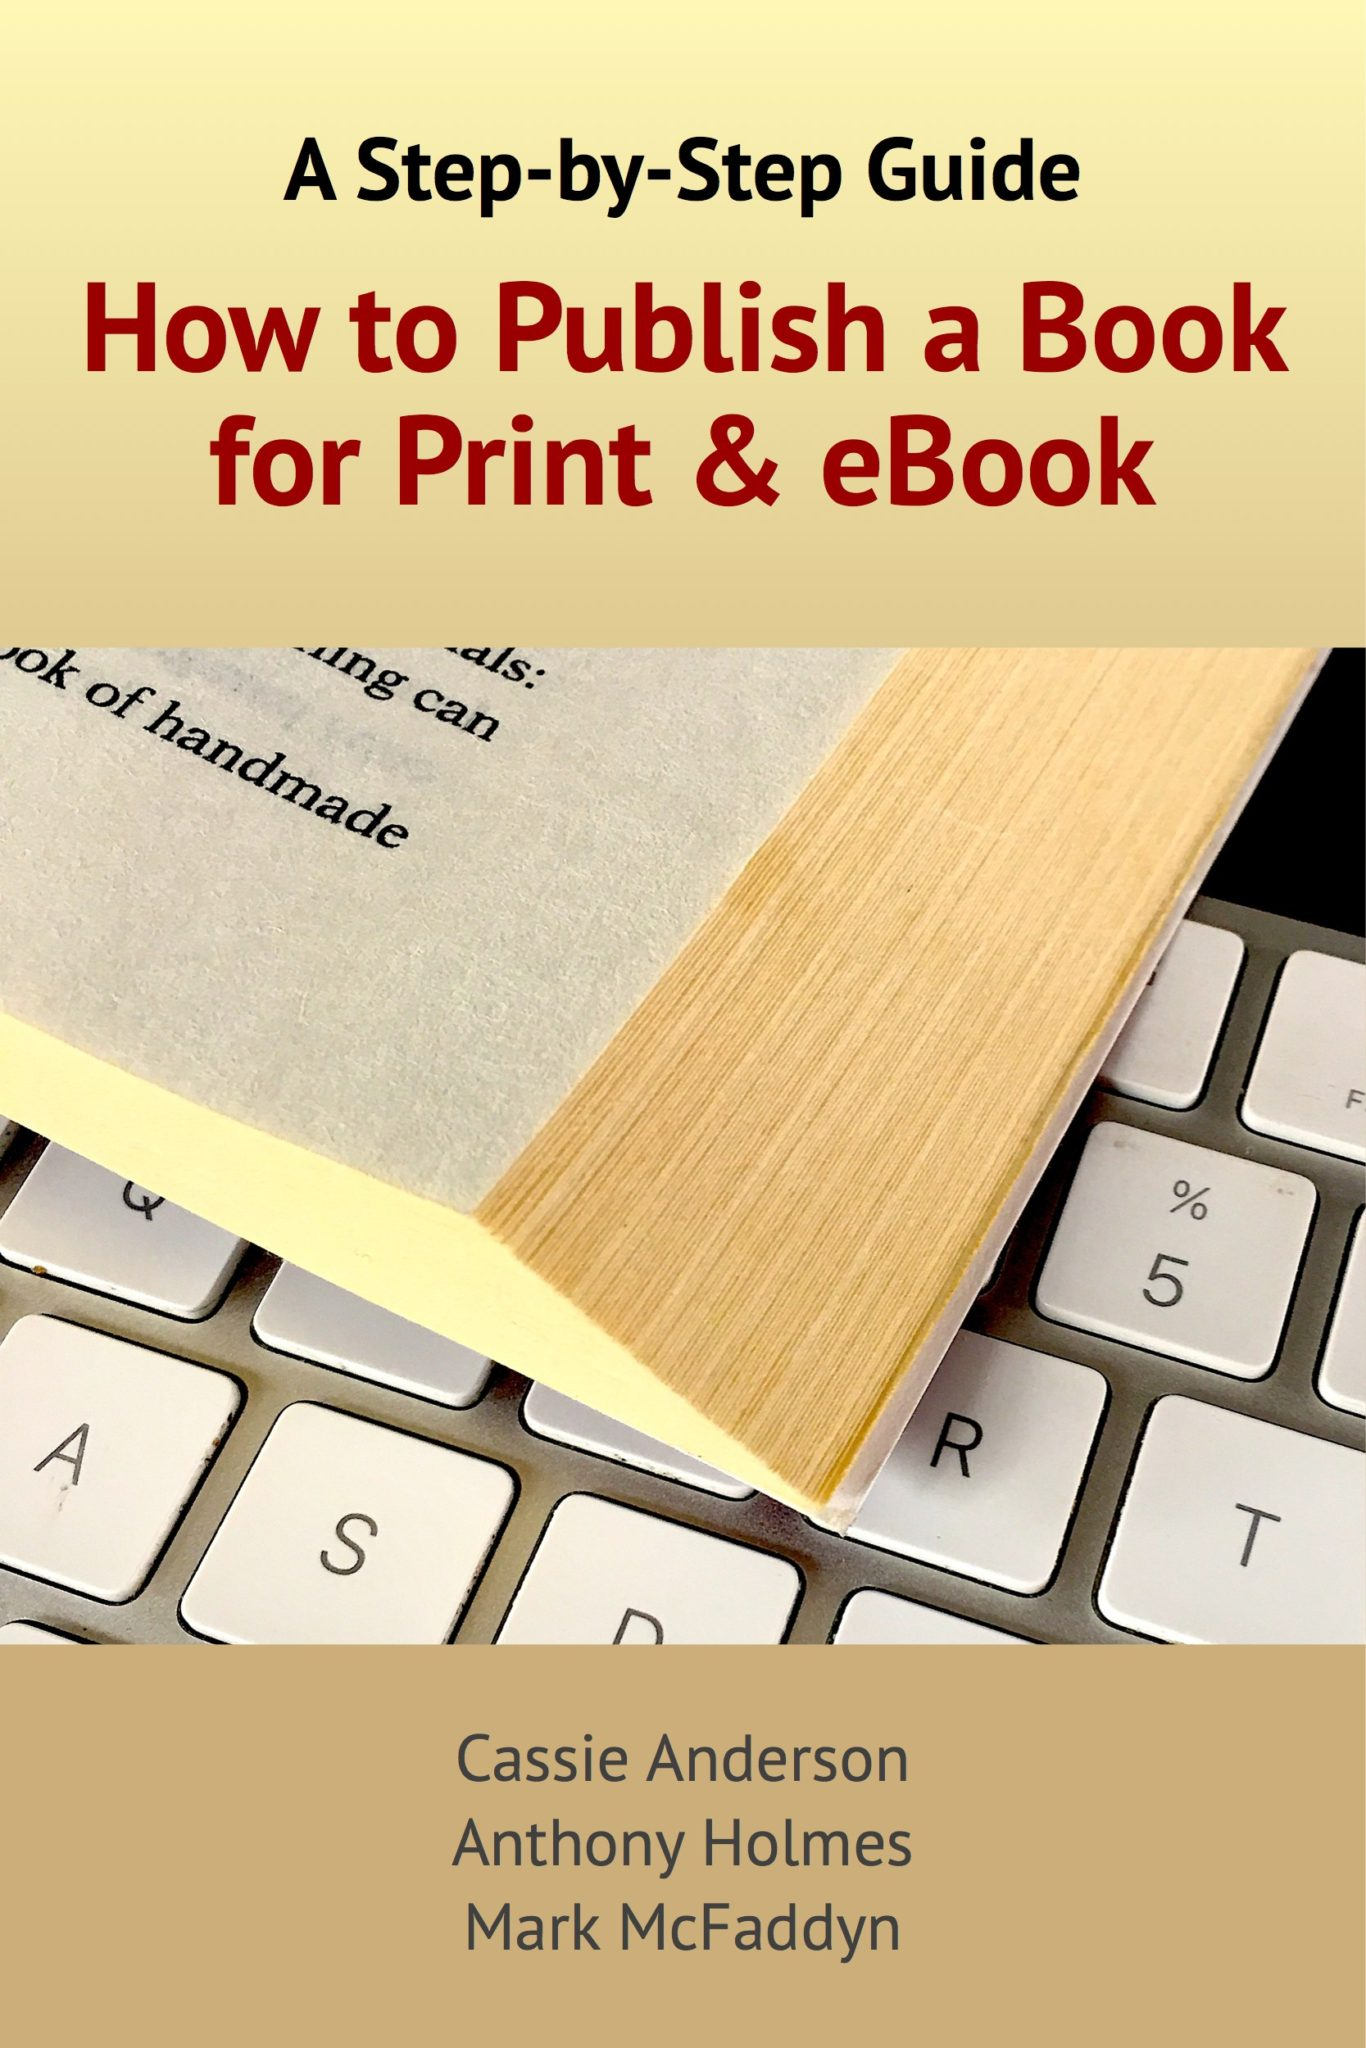 How to Publish a Book for Print and eBook: A Step-by-Step Guide